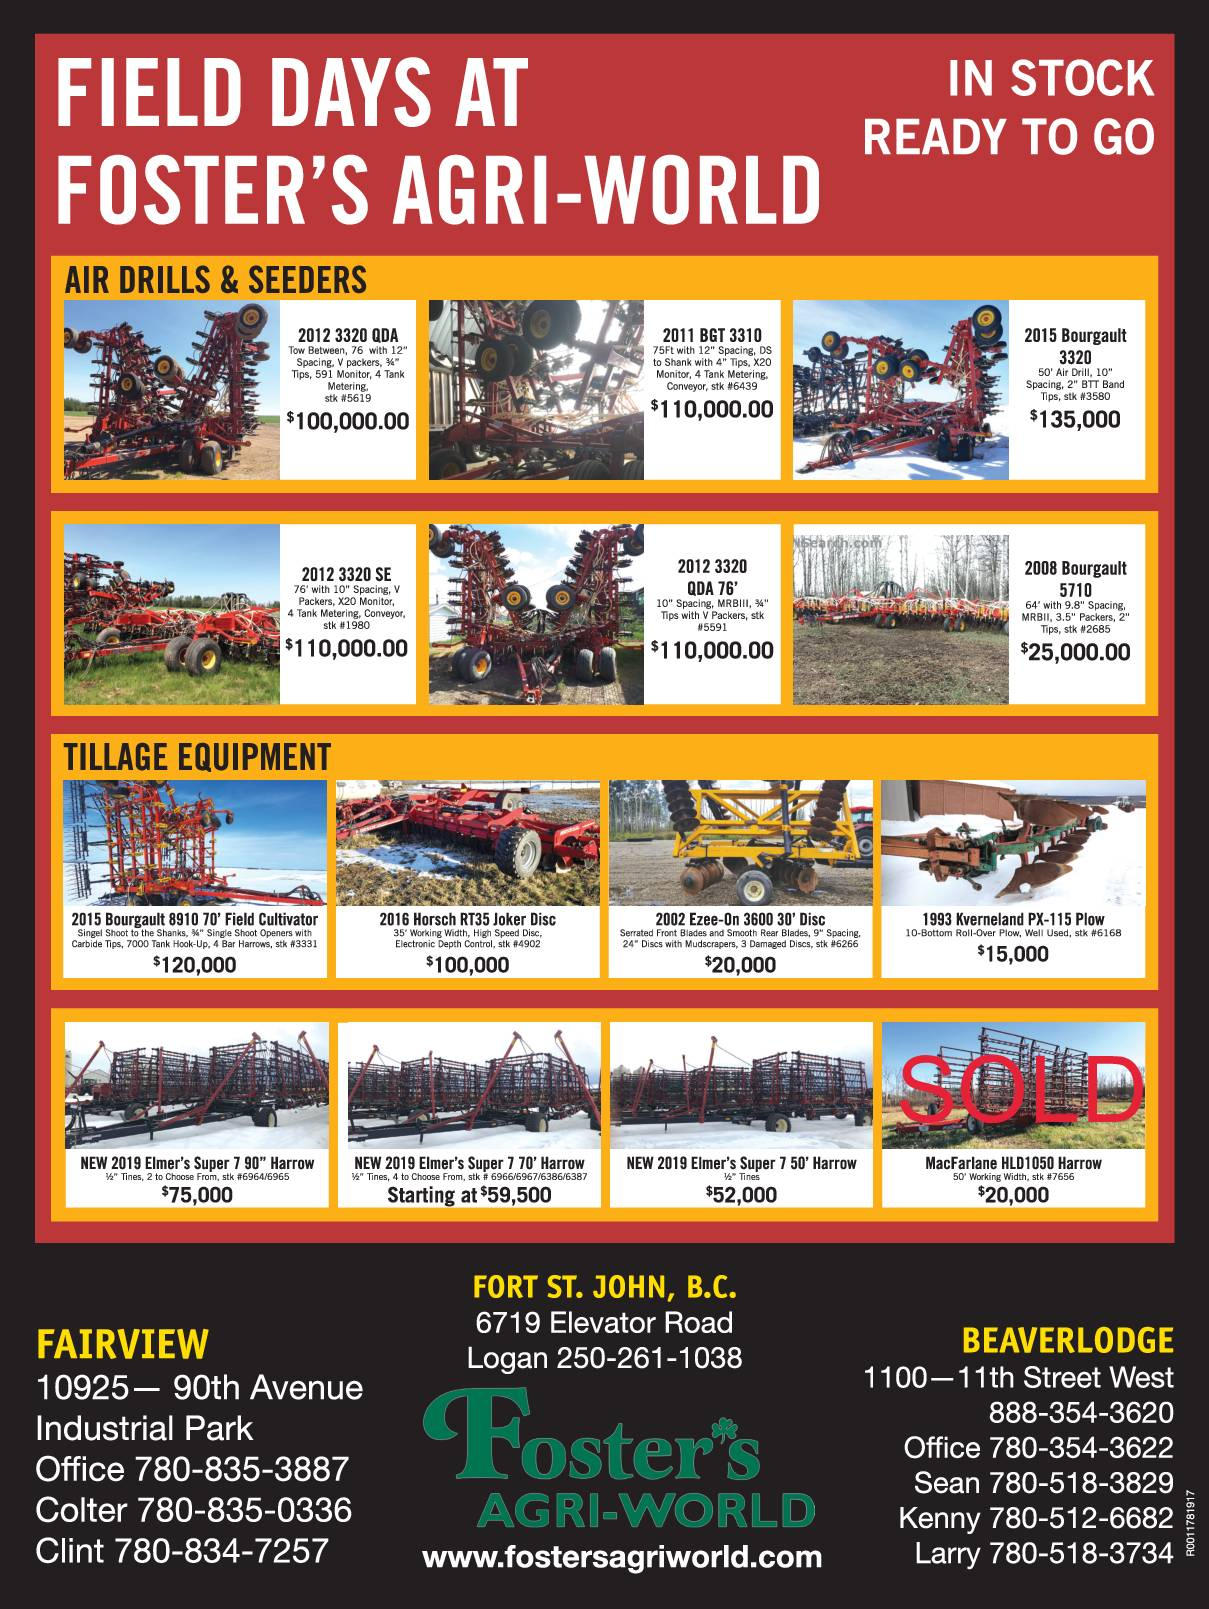 FIELD DAYS MAY 15